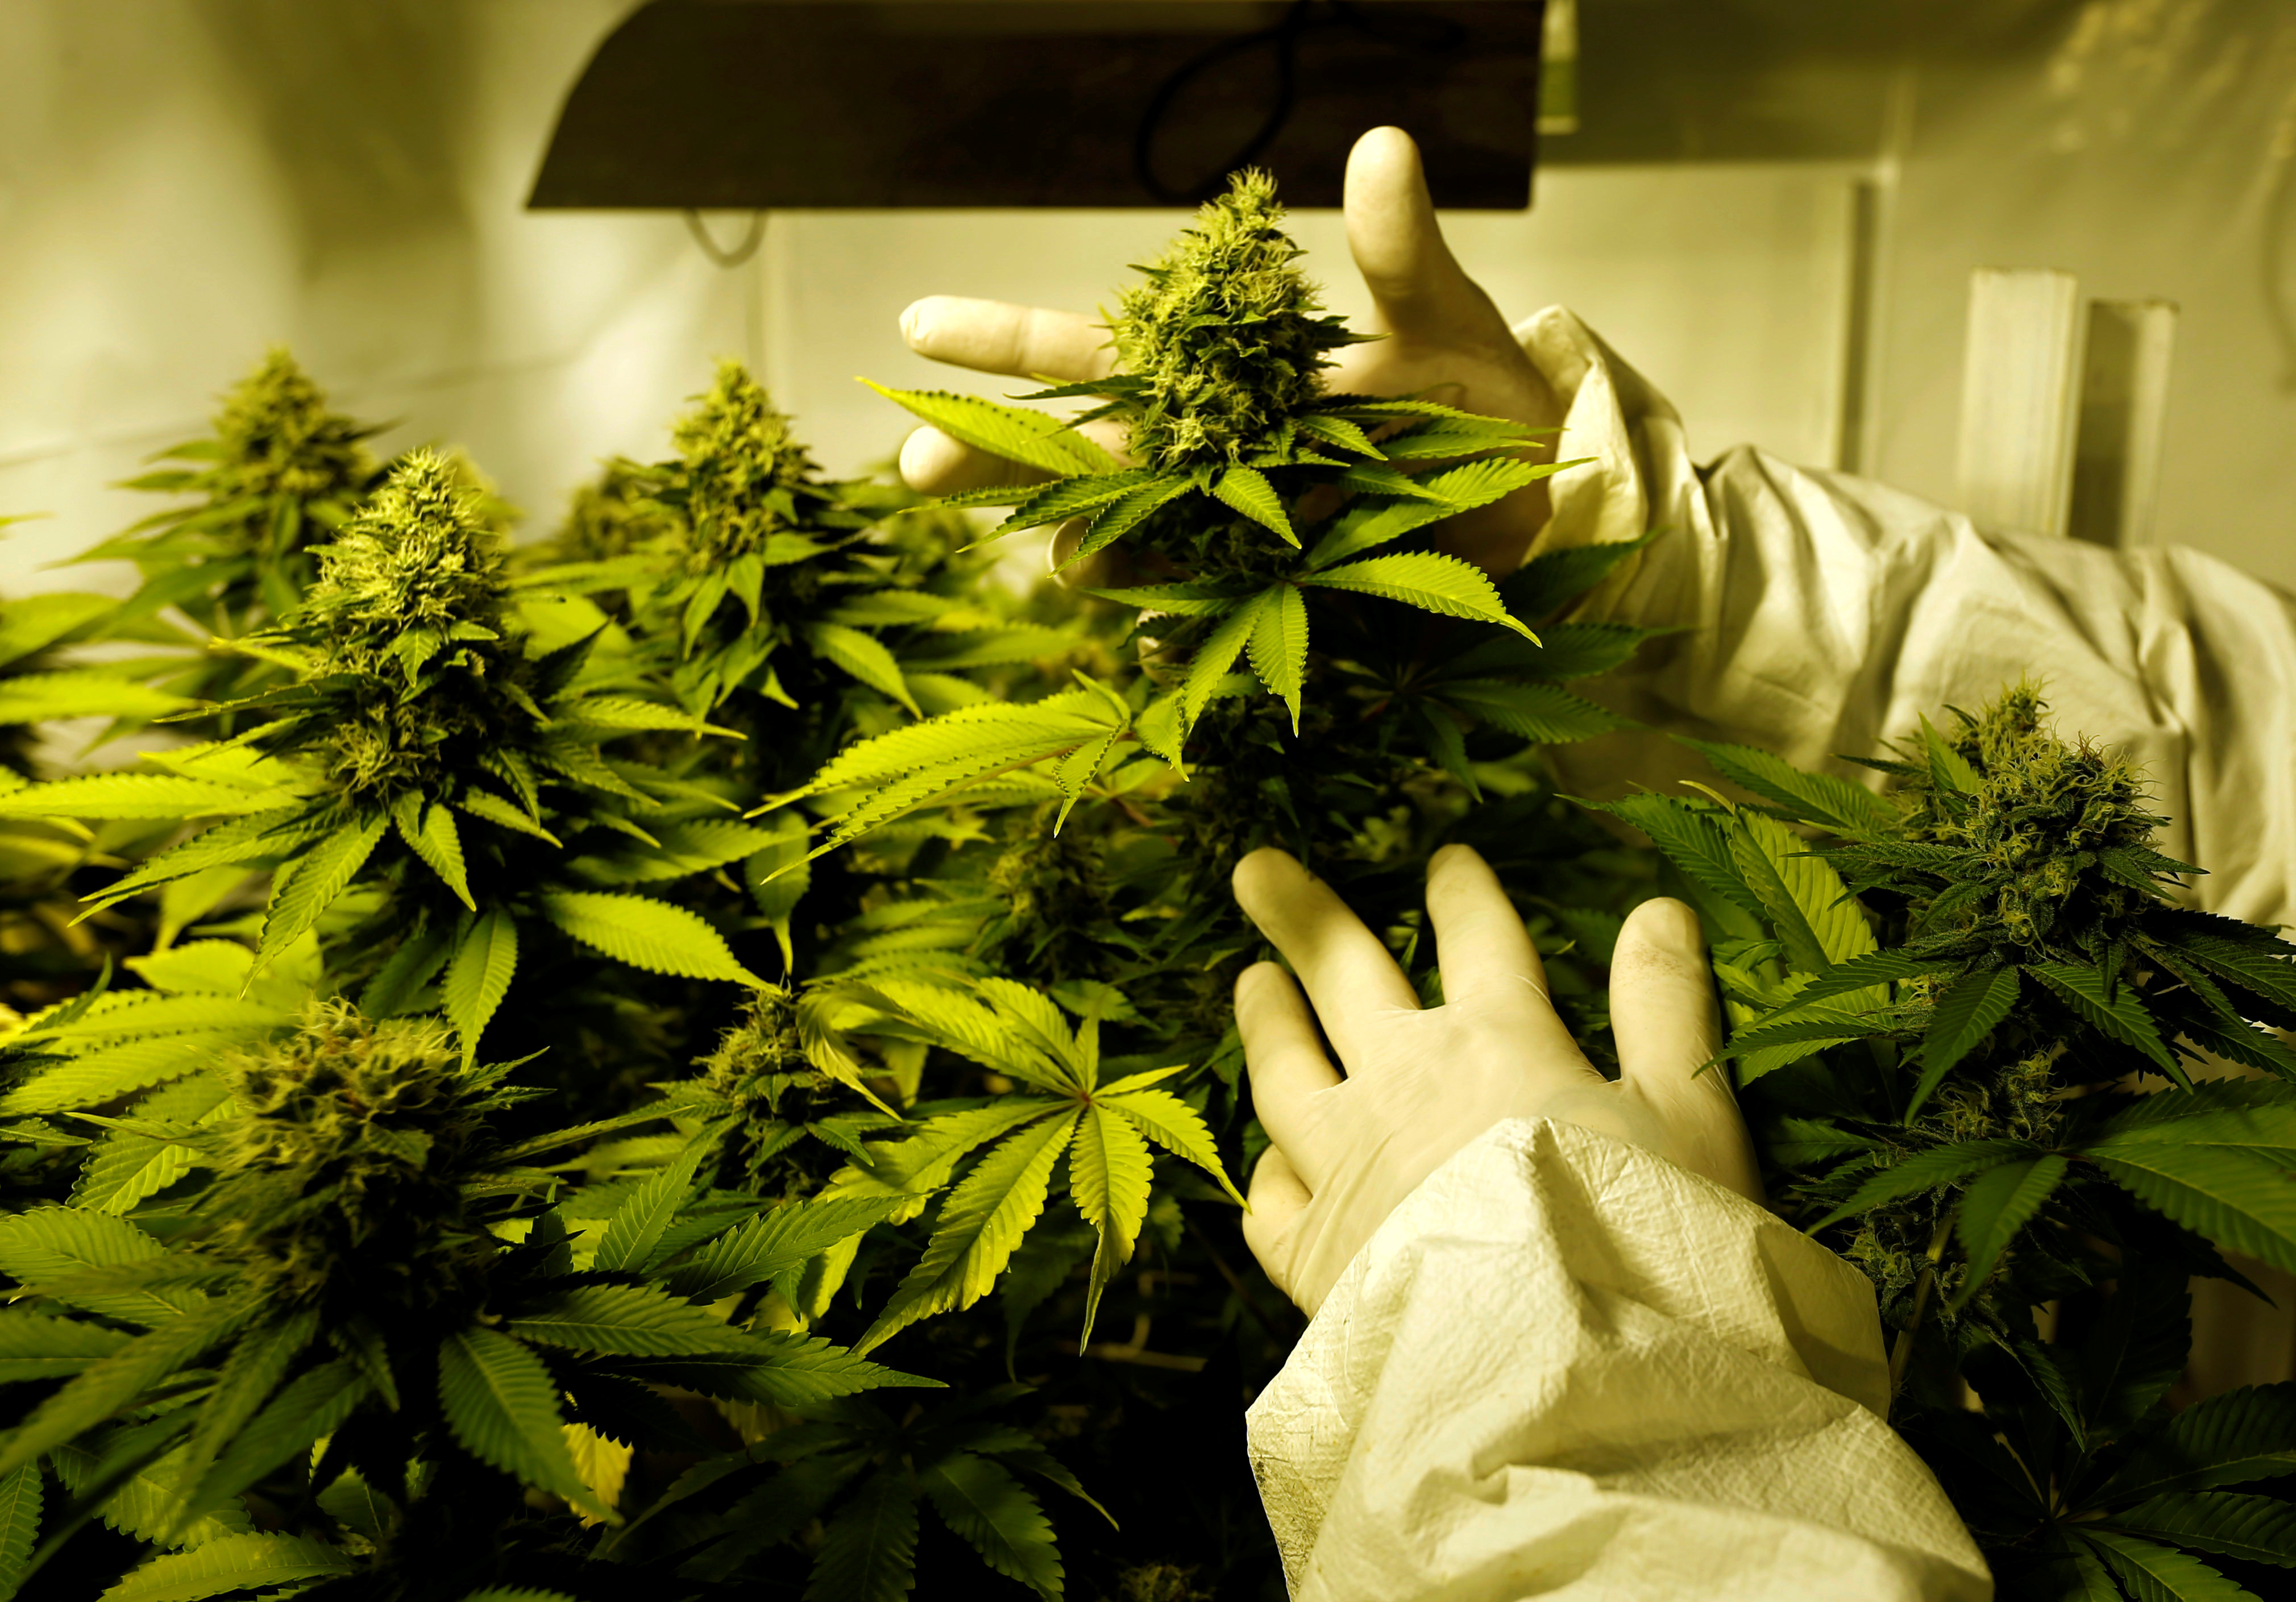 10 Legal Uses For This Marijuana Seeds